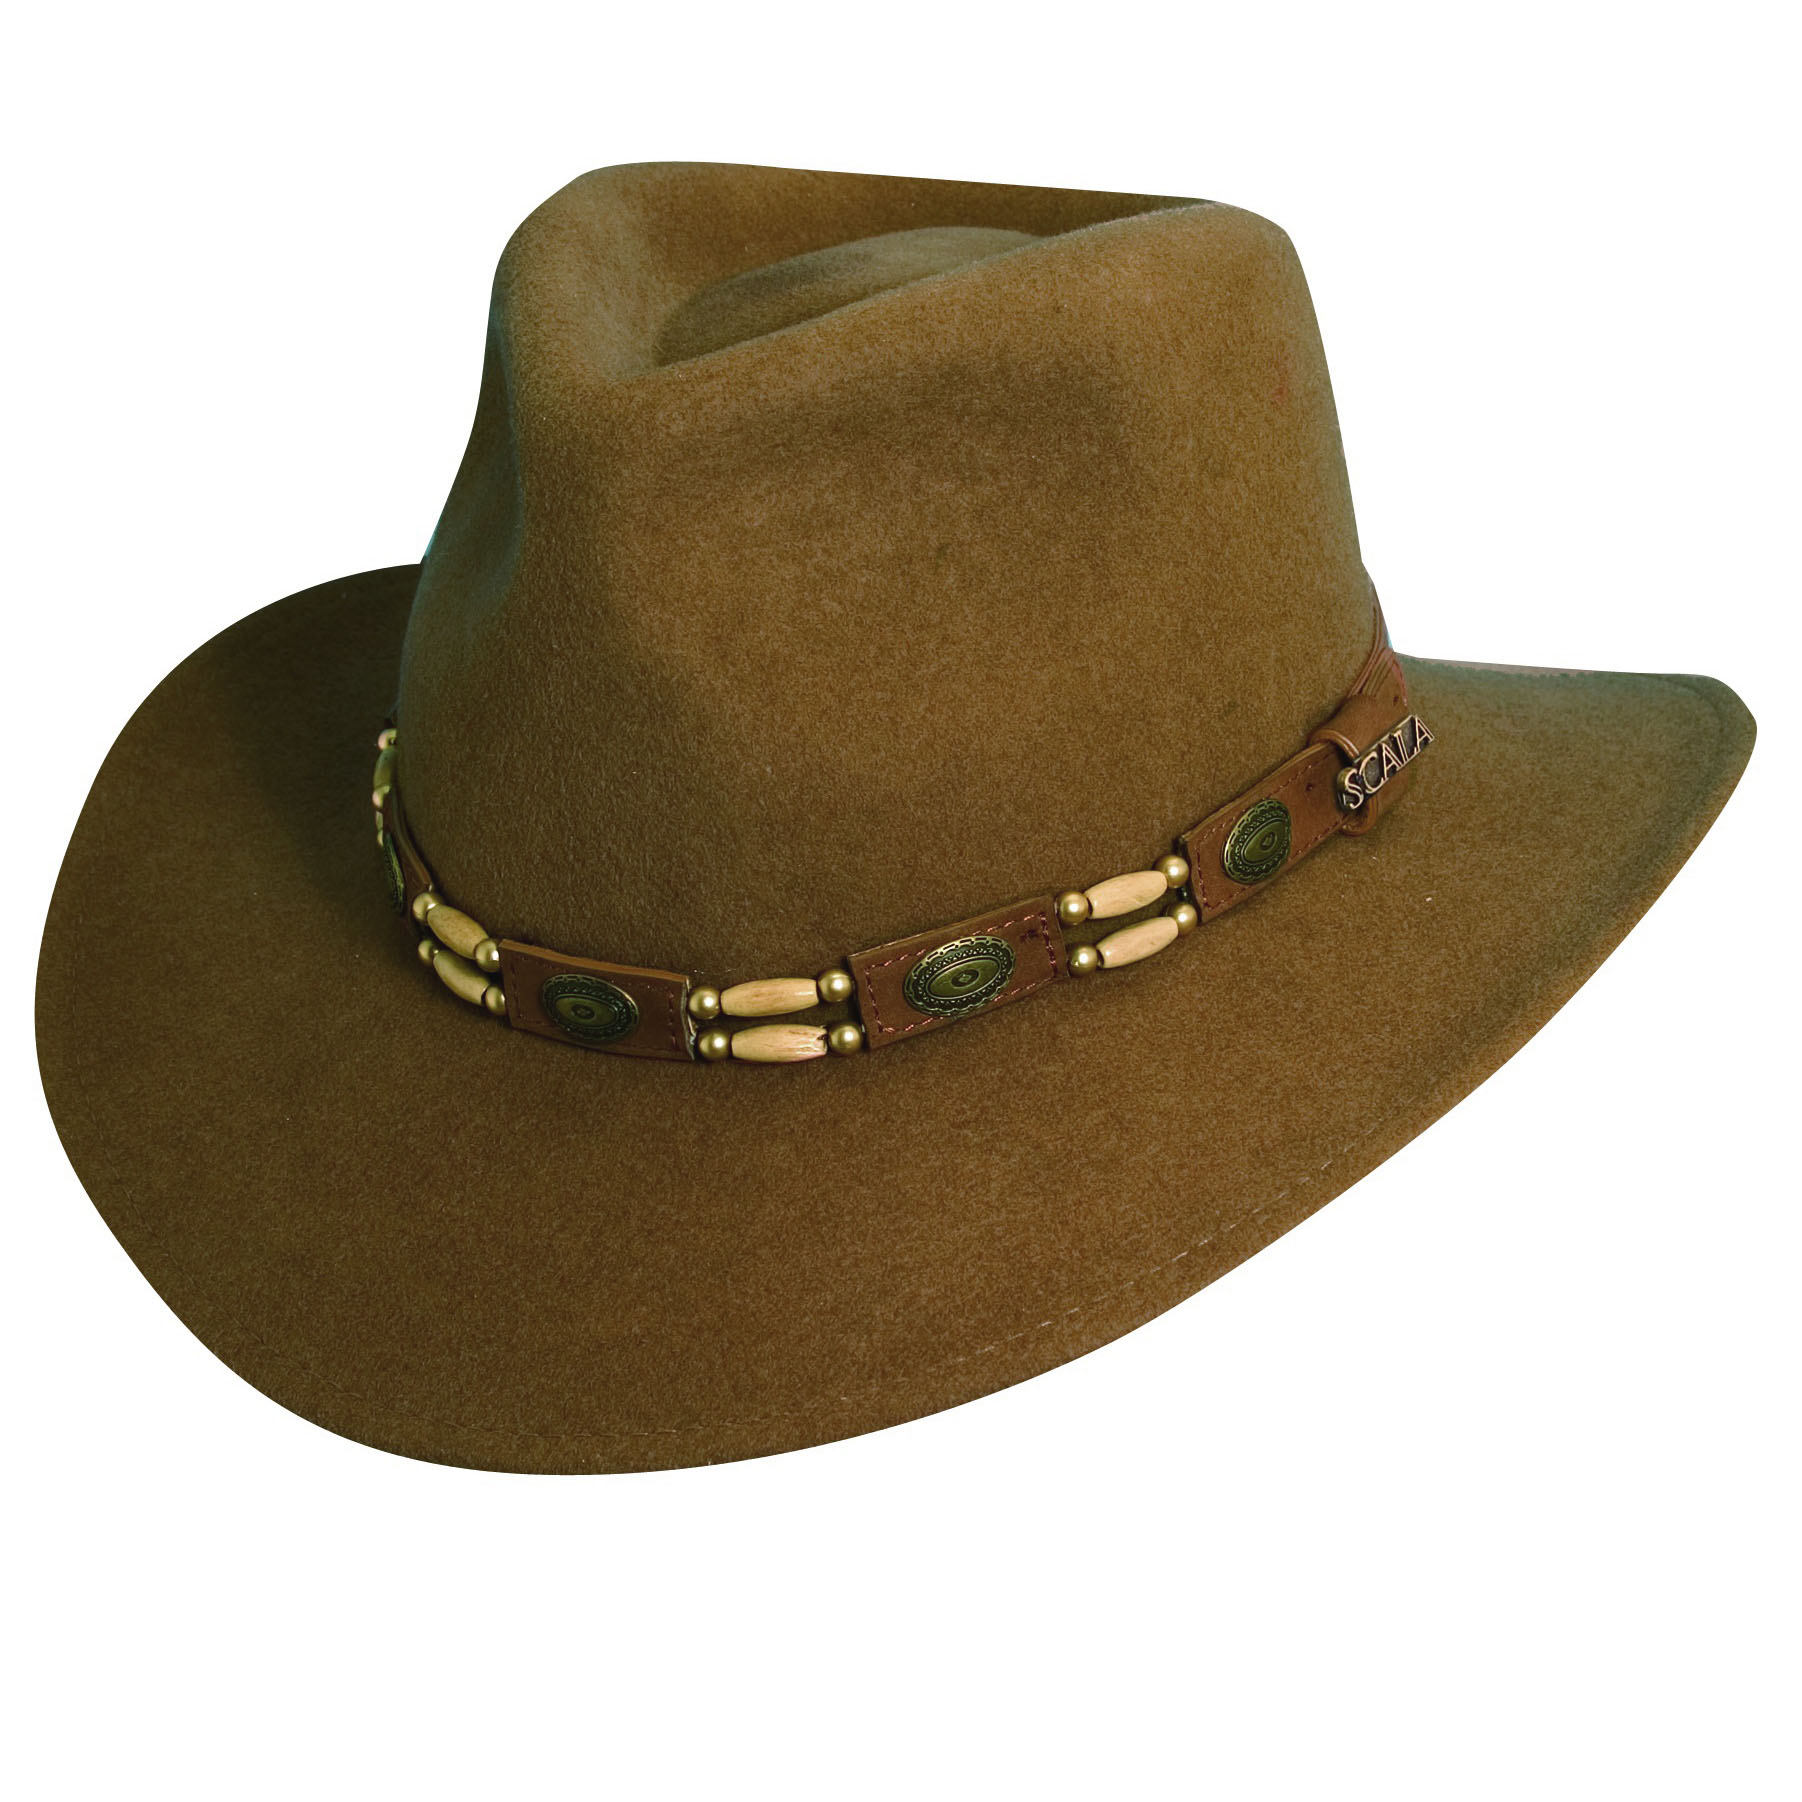 6e135dd9317b77 Wool Felt Outback Hat with Beads | Explorer Hats